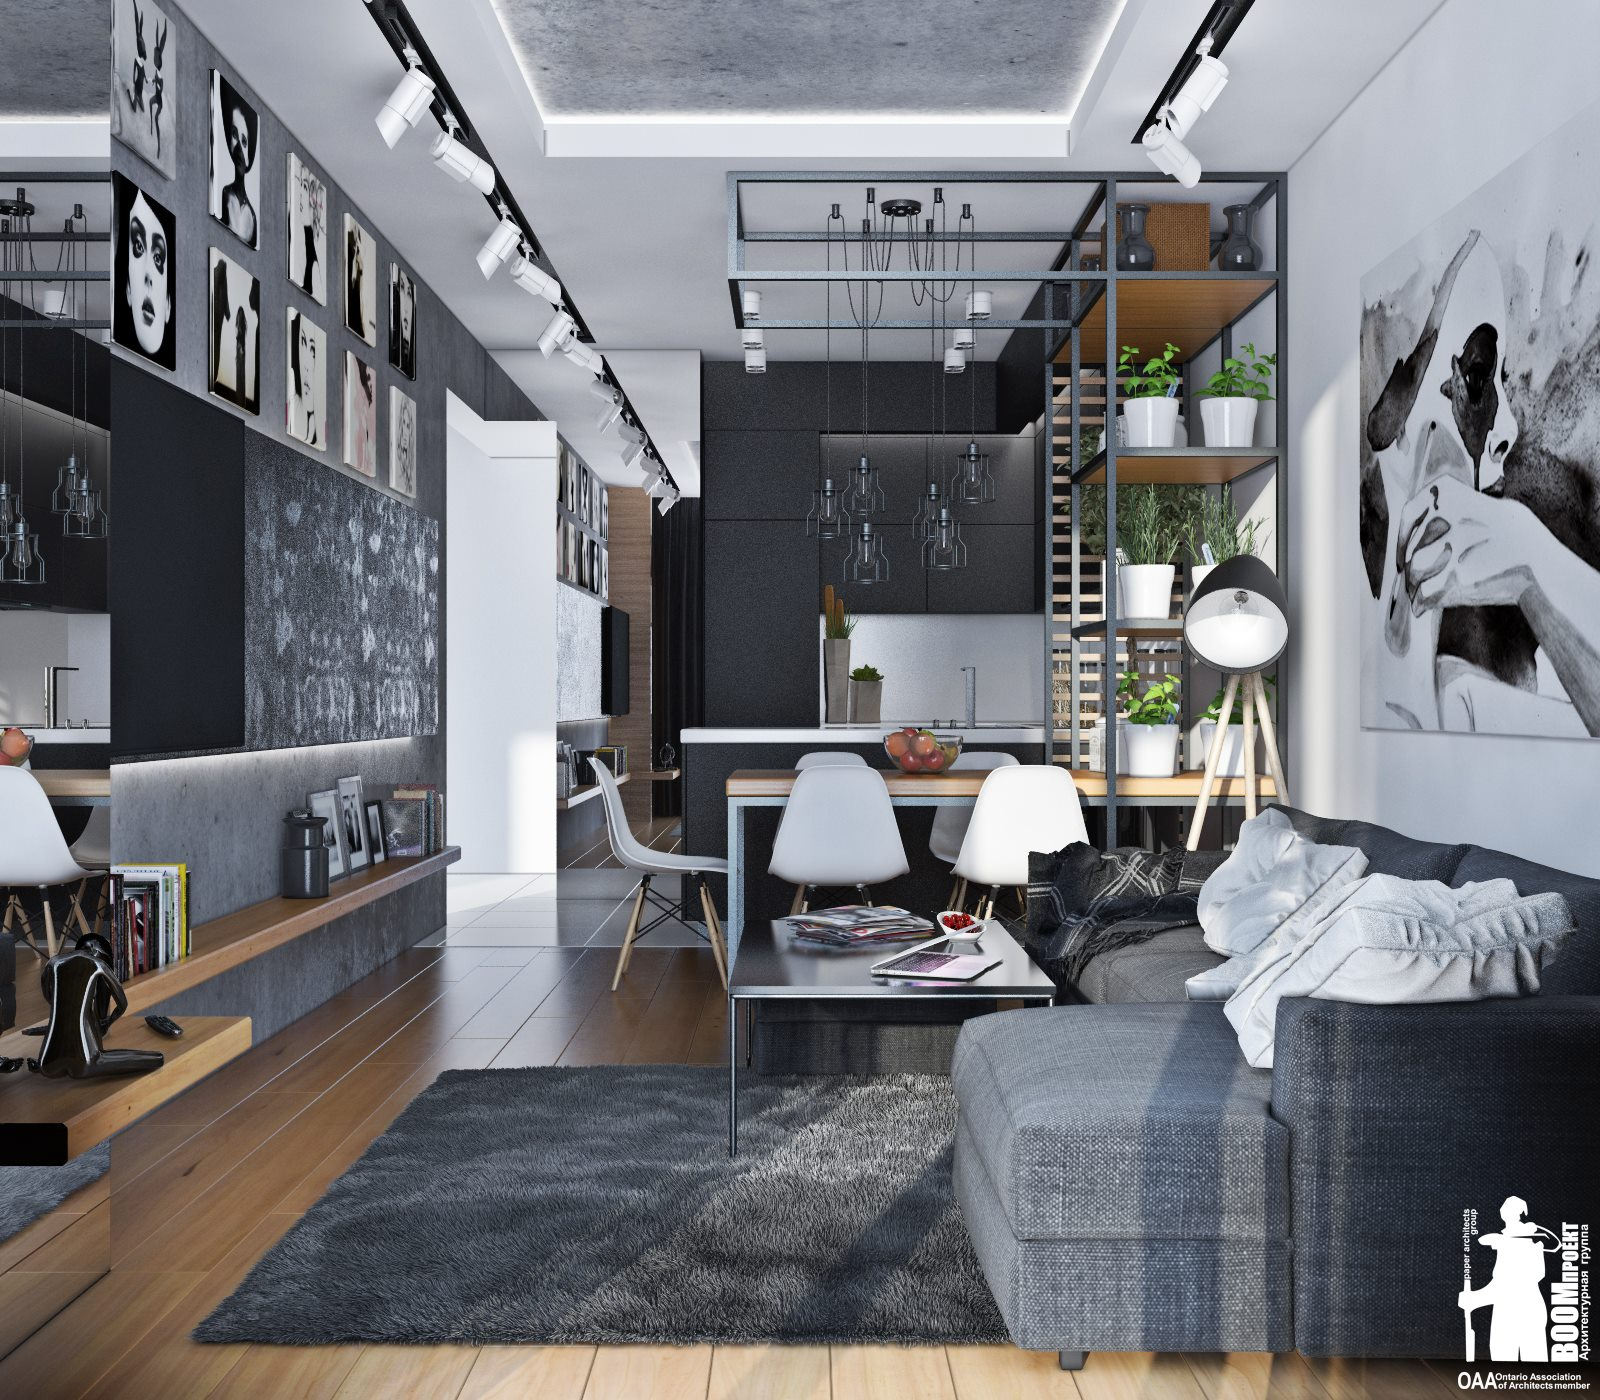 The space is decorated in modern laconic style with light industrial touches